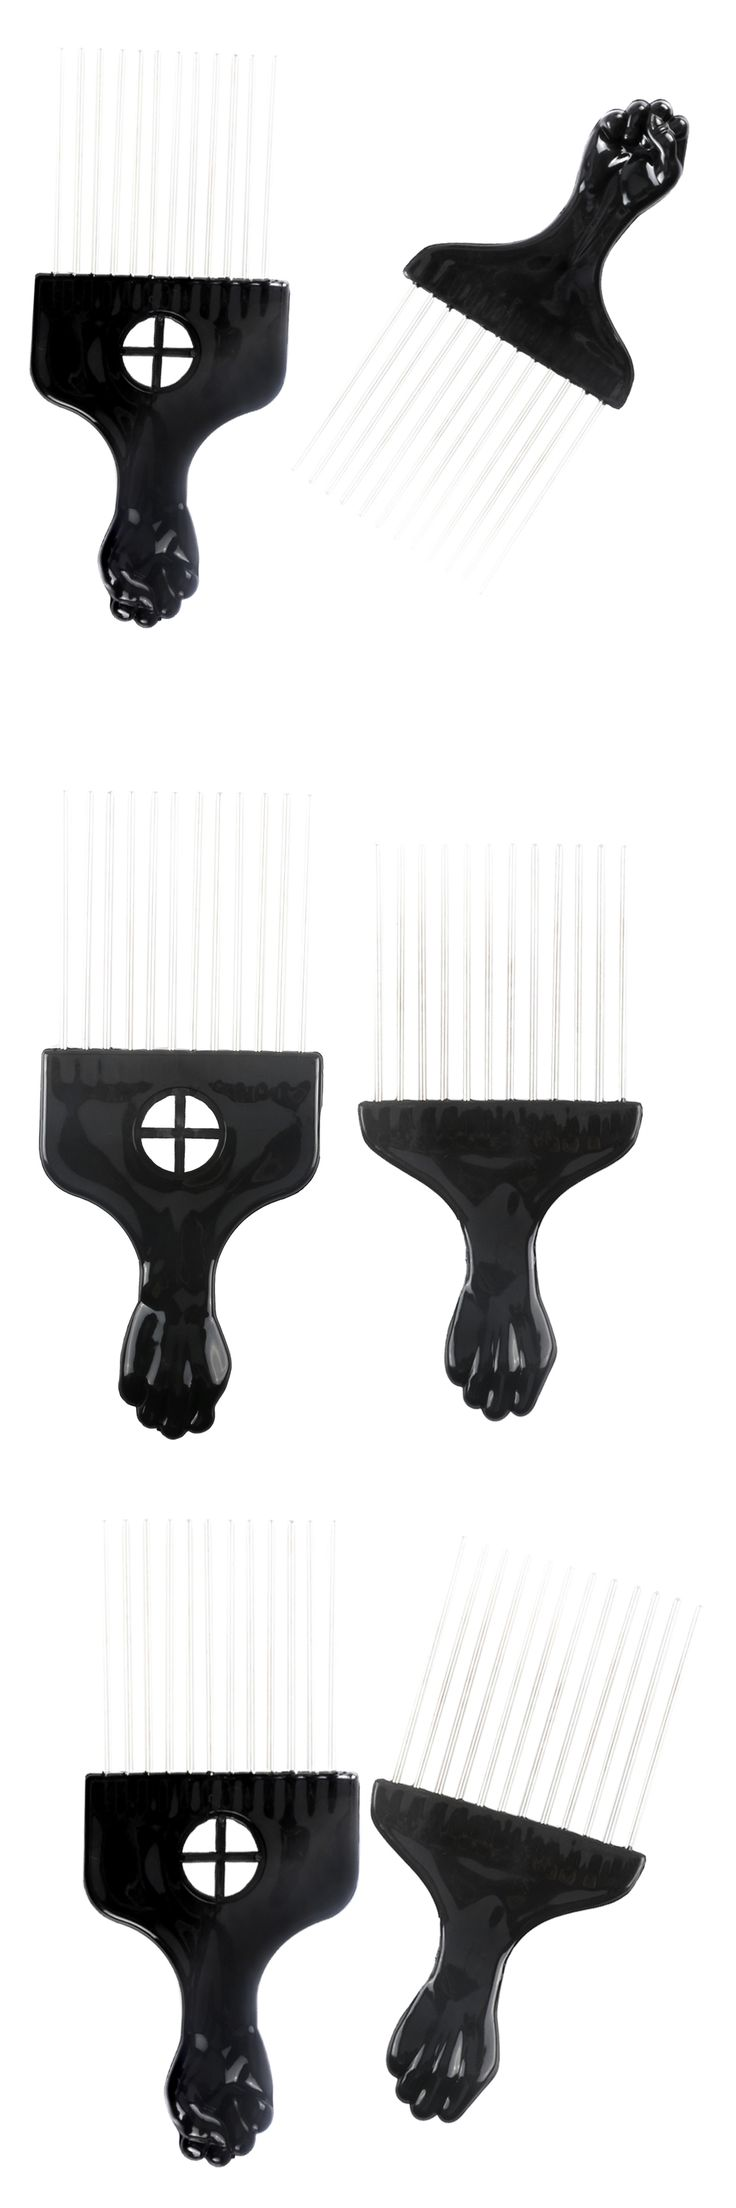 Pro 1 Pcs Afro Hair Fork Comb With Stainless Steel Durable Plastic Hairstyling Pin Comb In 2 Design  Hairdressing Tools